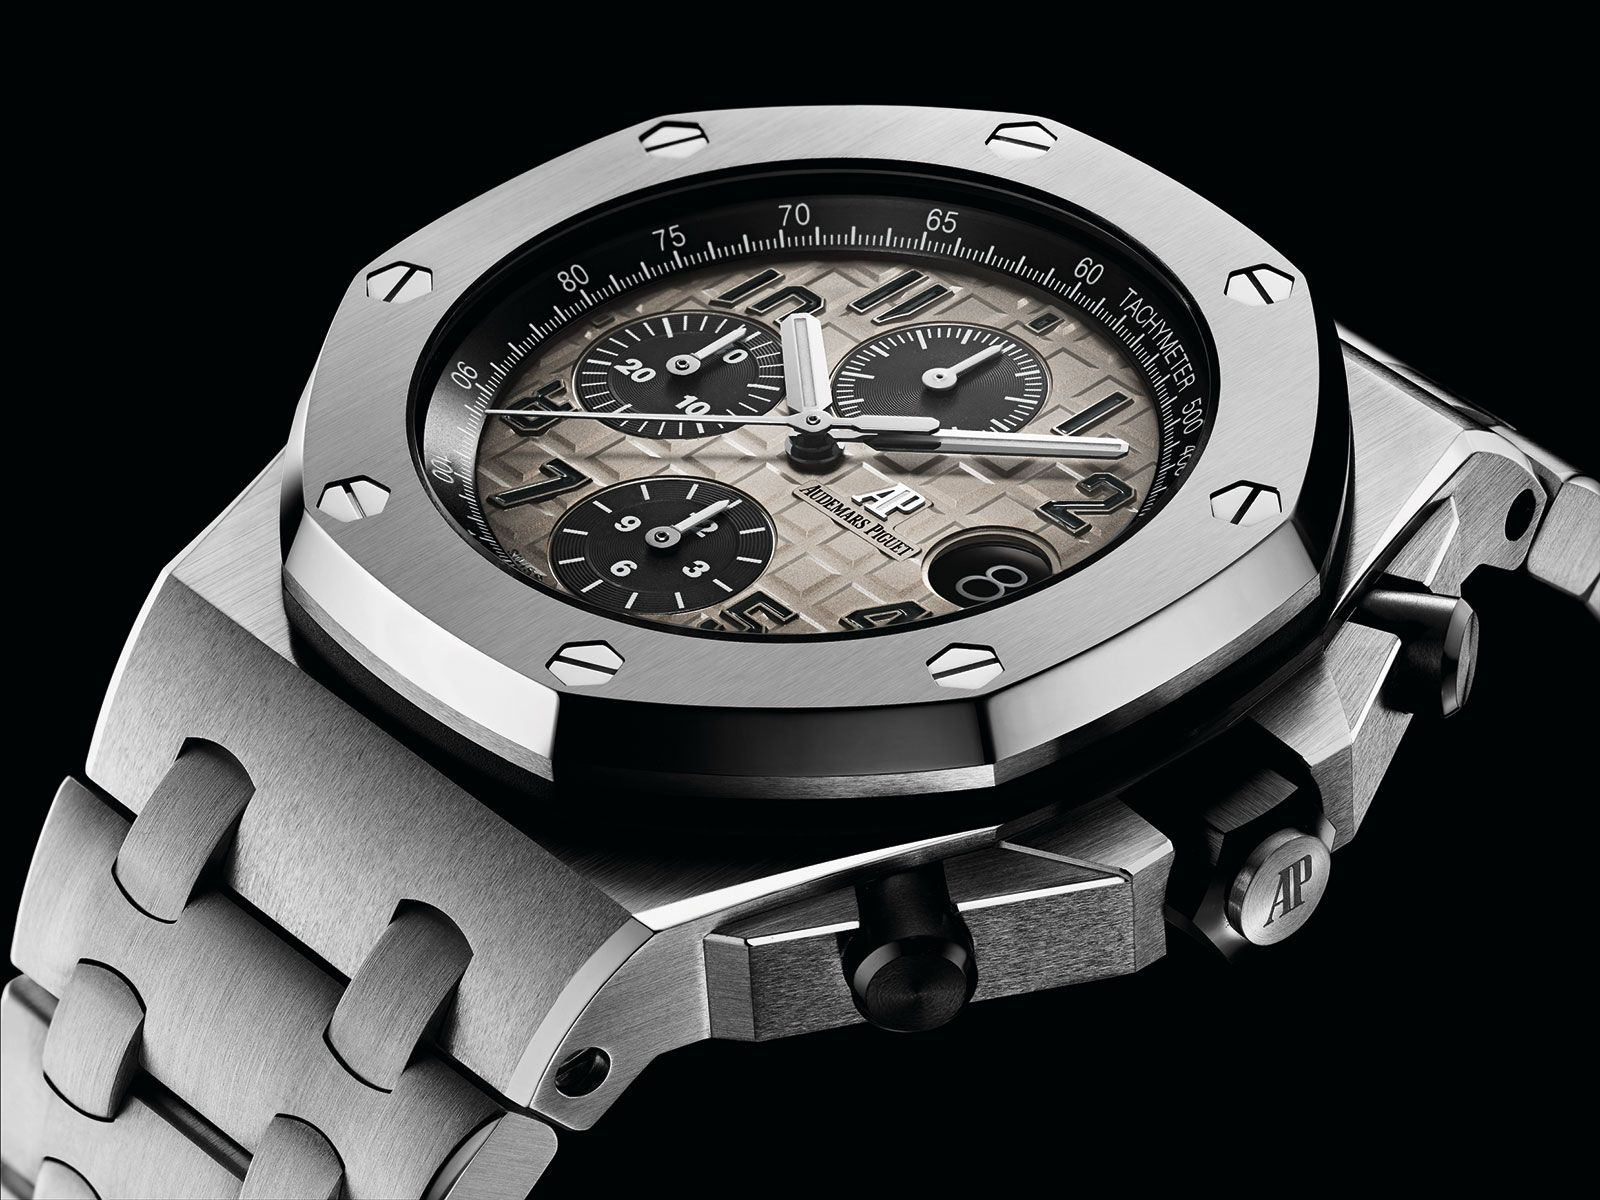 45872ef0c16 Audemars Piguet Royal Oak Offshore - platinum 26470PT - case detail -  Perpetuelle